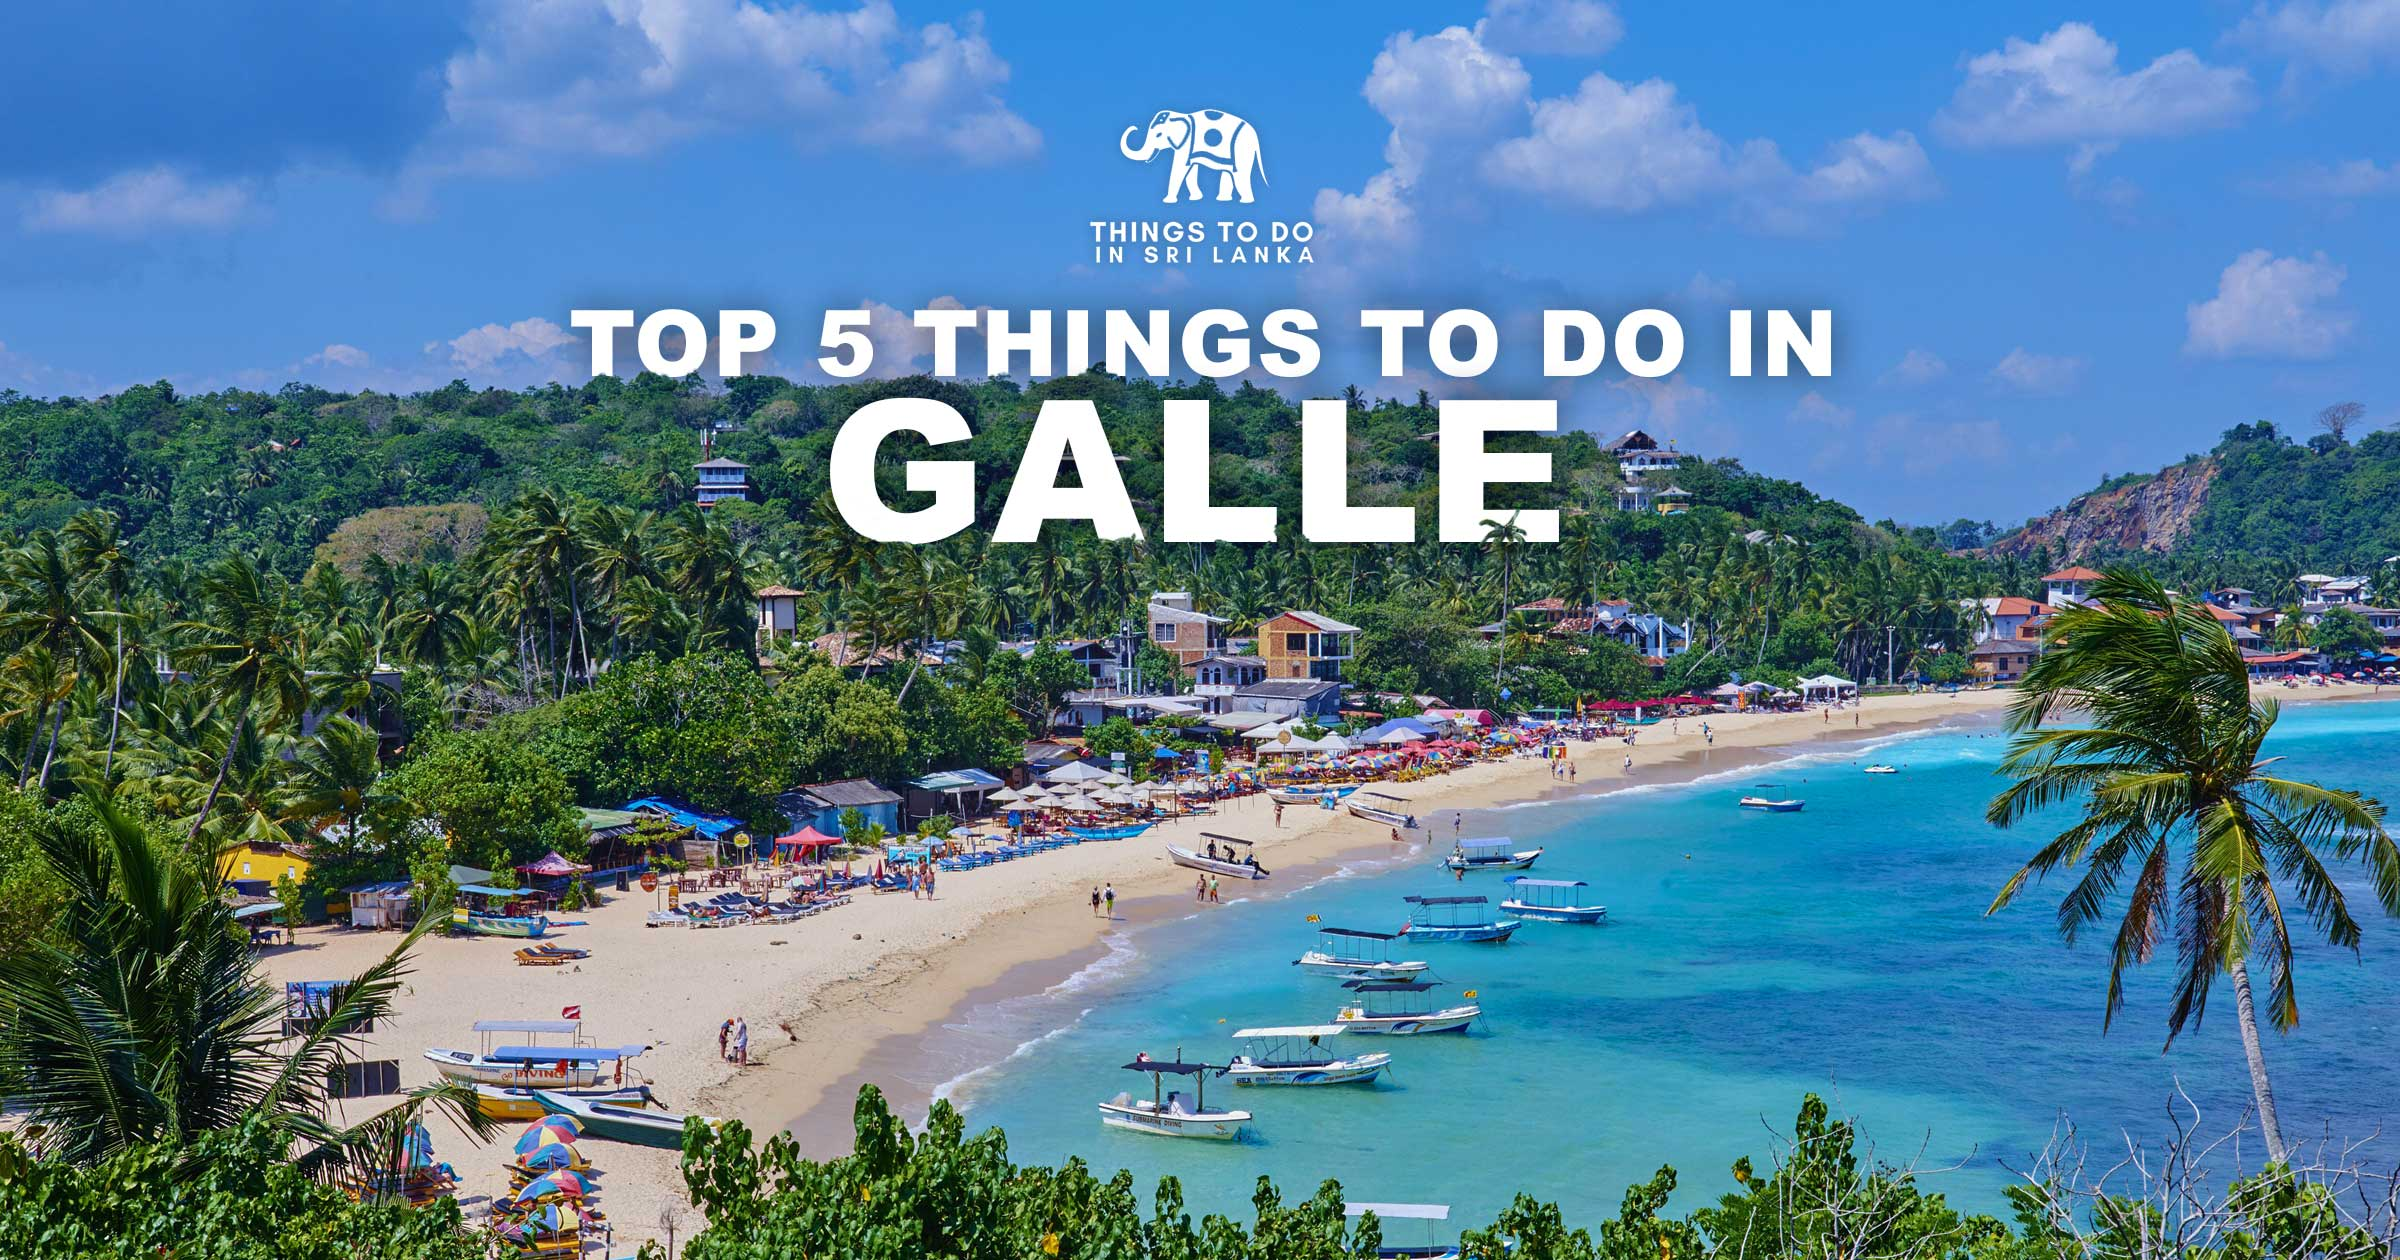 Top 5 things to do in Galle